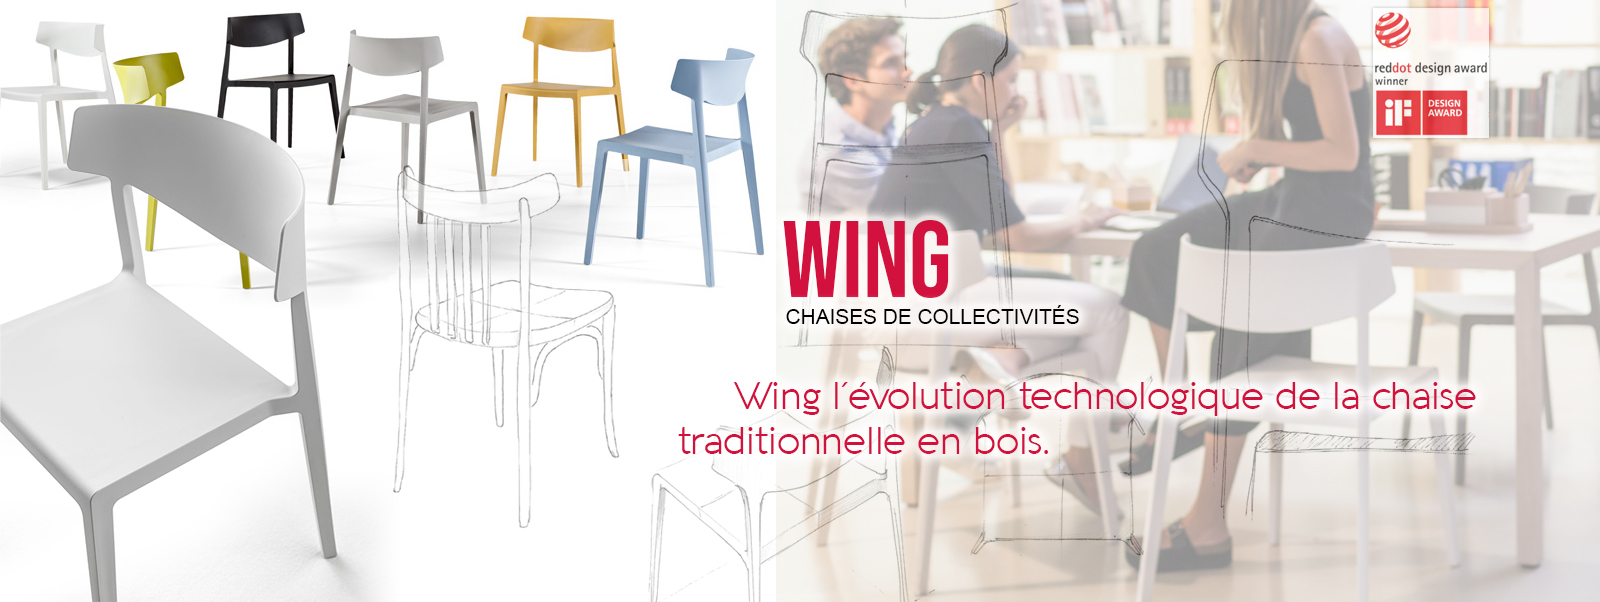 wing_chaises_3